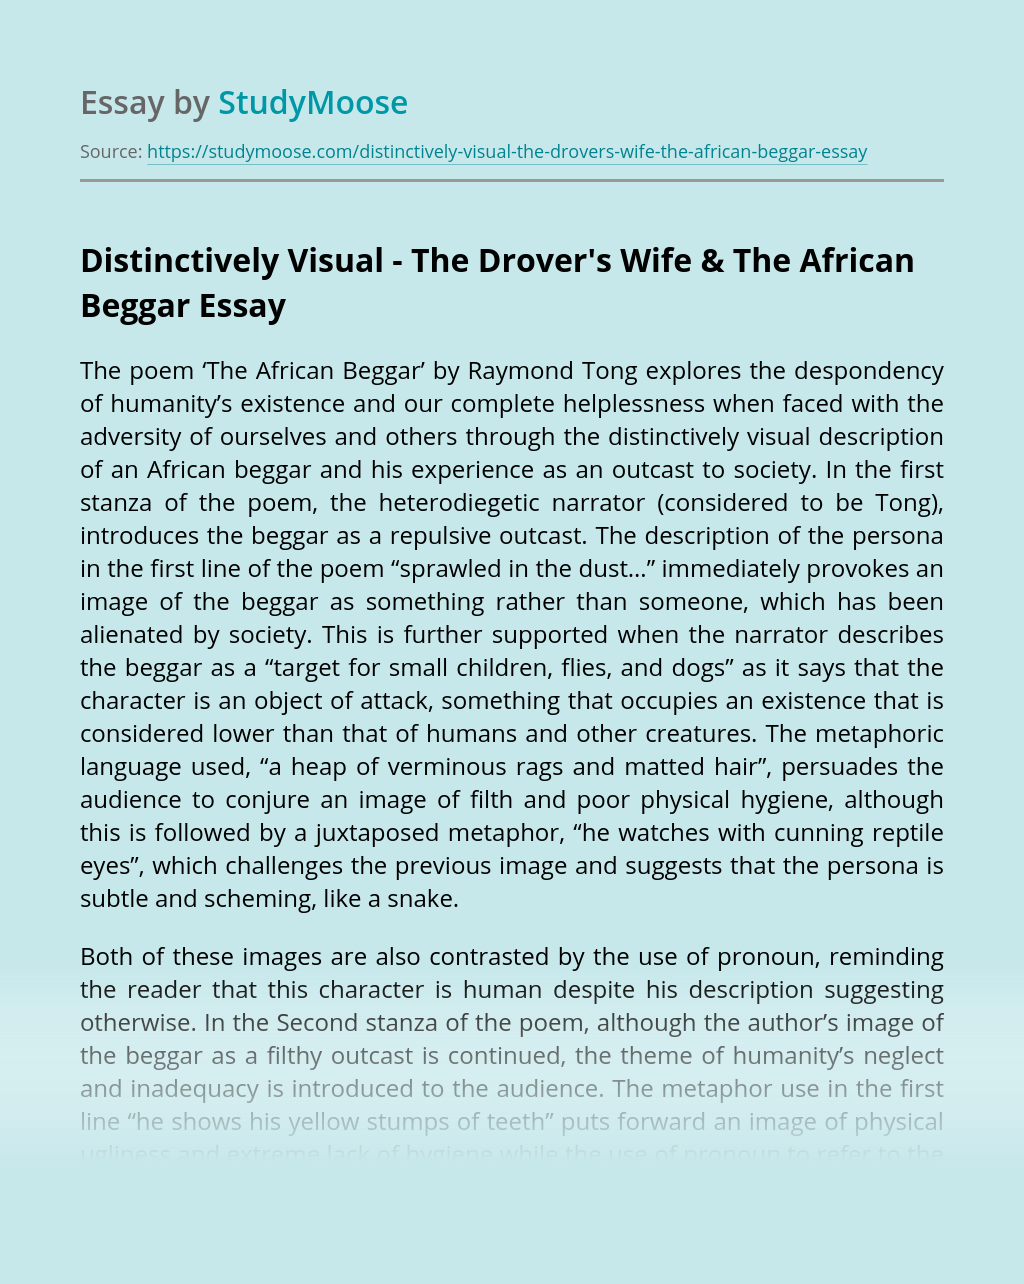 Distinctively Visual - The Drover's Wife & The African Beggar